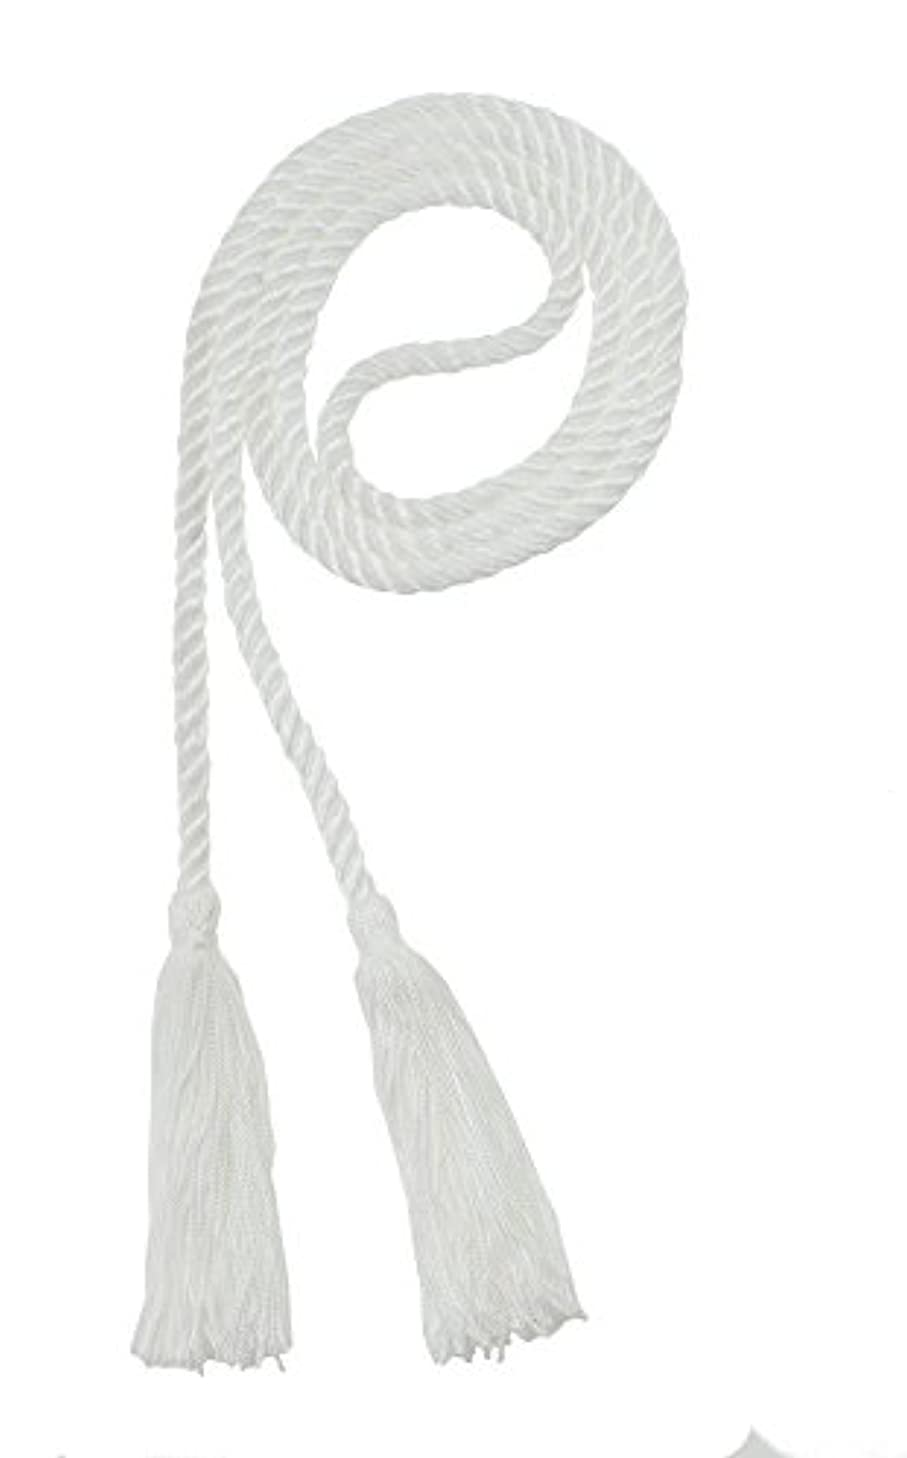 HONOR CORD WHITE - TASSEL DEPOT BRAND - MADE IN USA